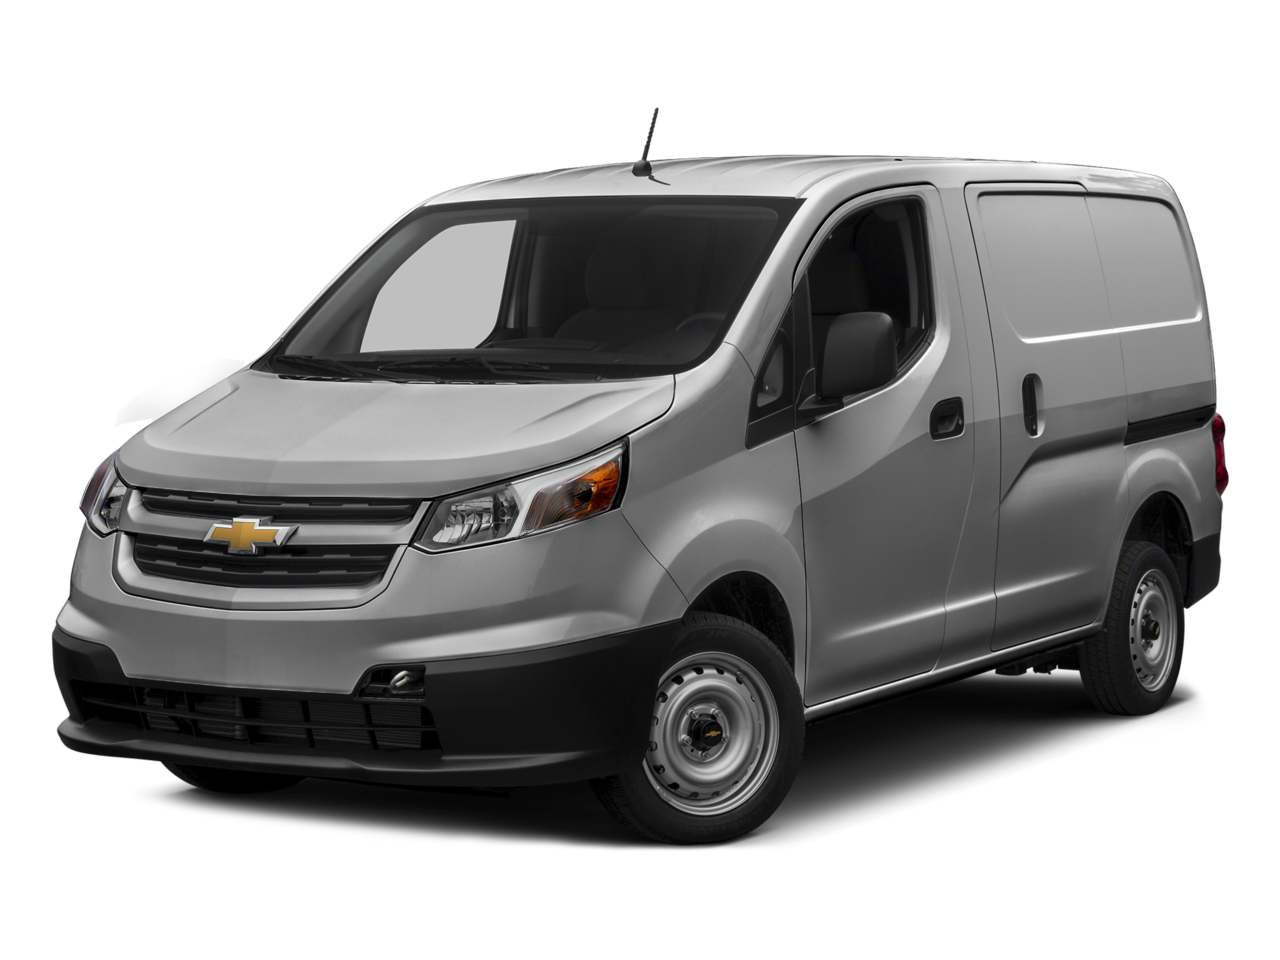 2016 chevrolet city express gary merrillville. Black Bedroom Furniture Sets. Home Design Ideas